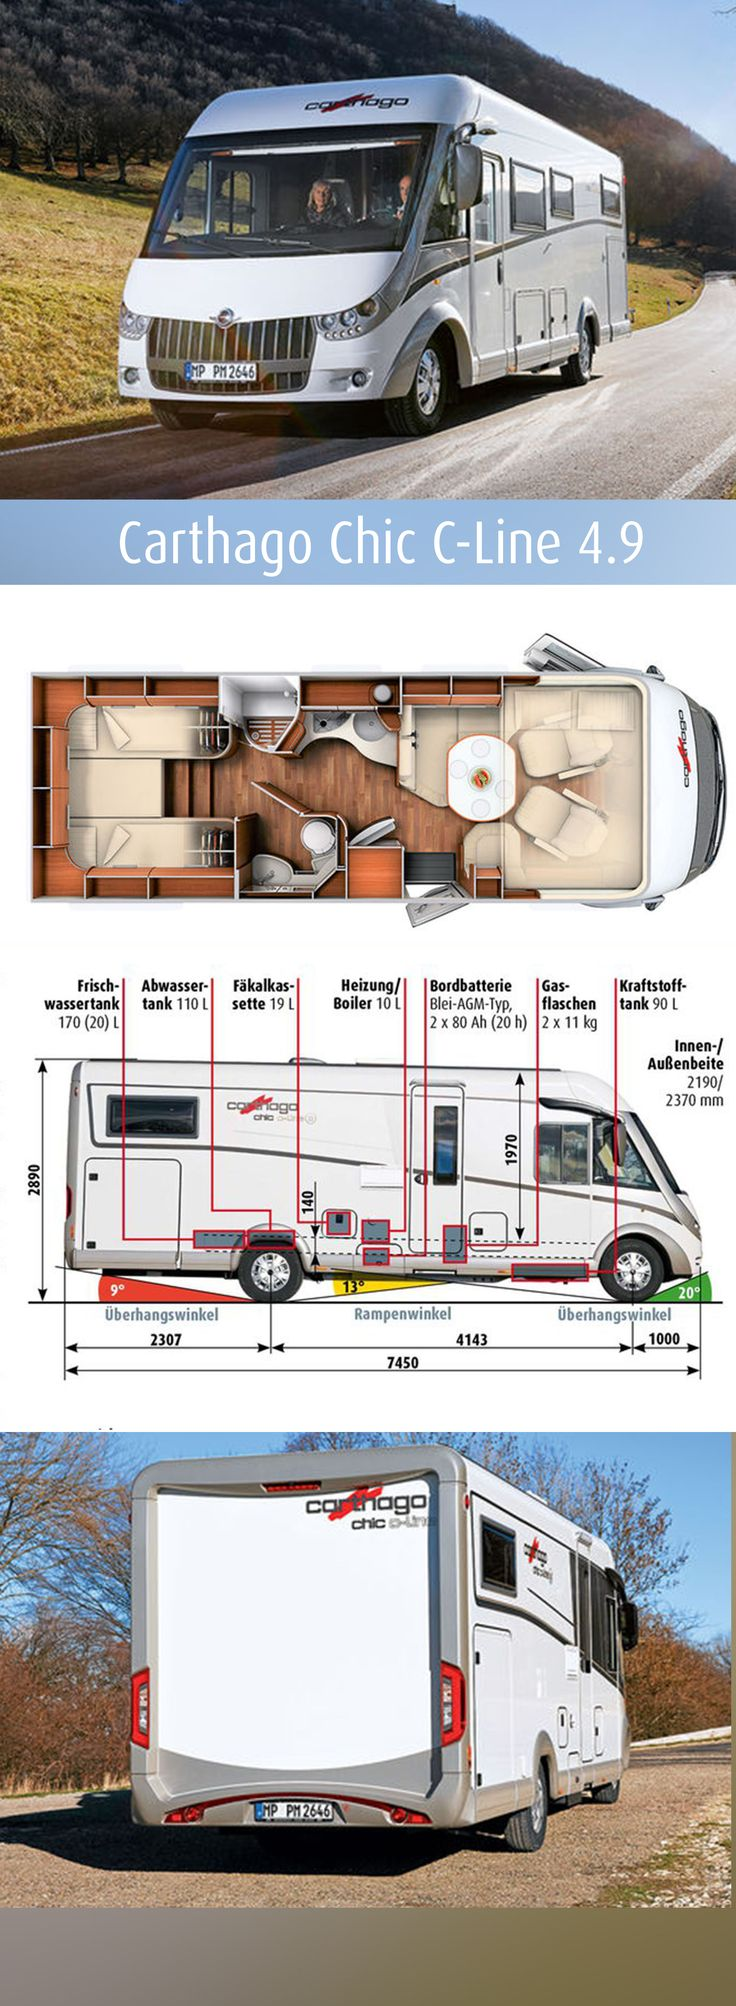 107 best autodom images on pinterest vans campers and motor homes